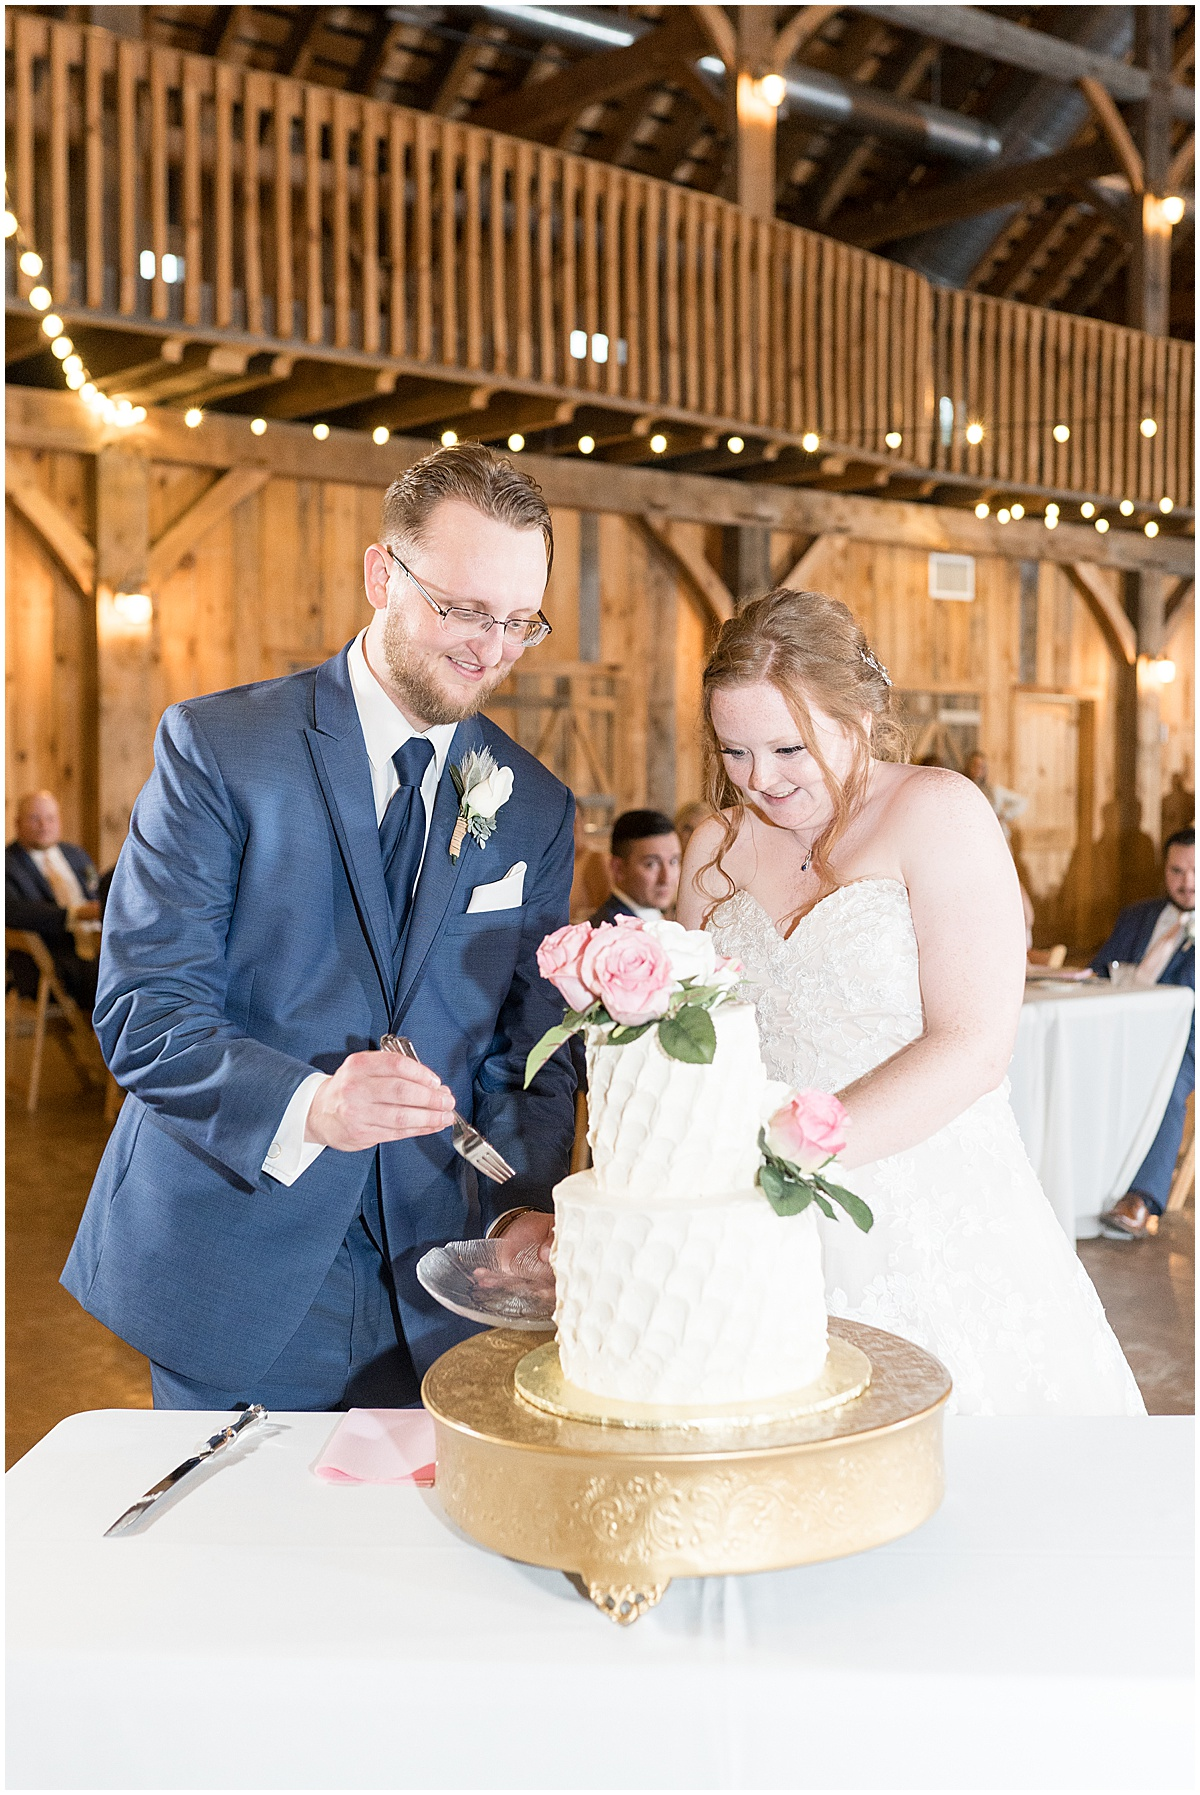 Bride and groom cutting cake at County Line Orchard wedding reception in Hobart, Indiana